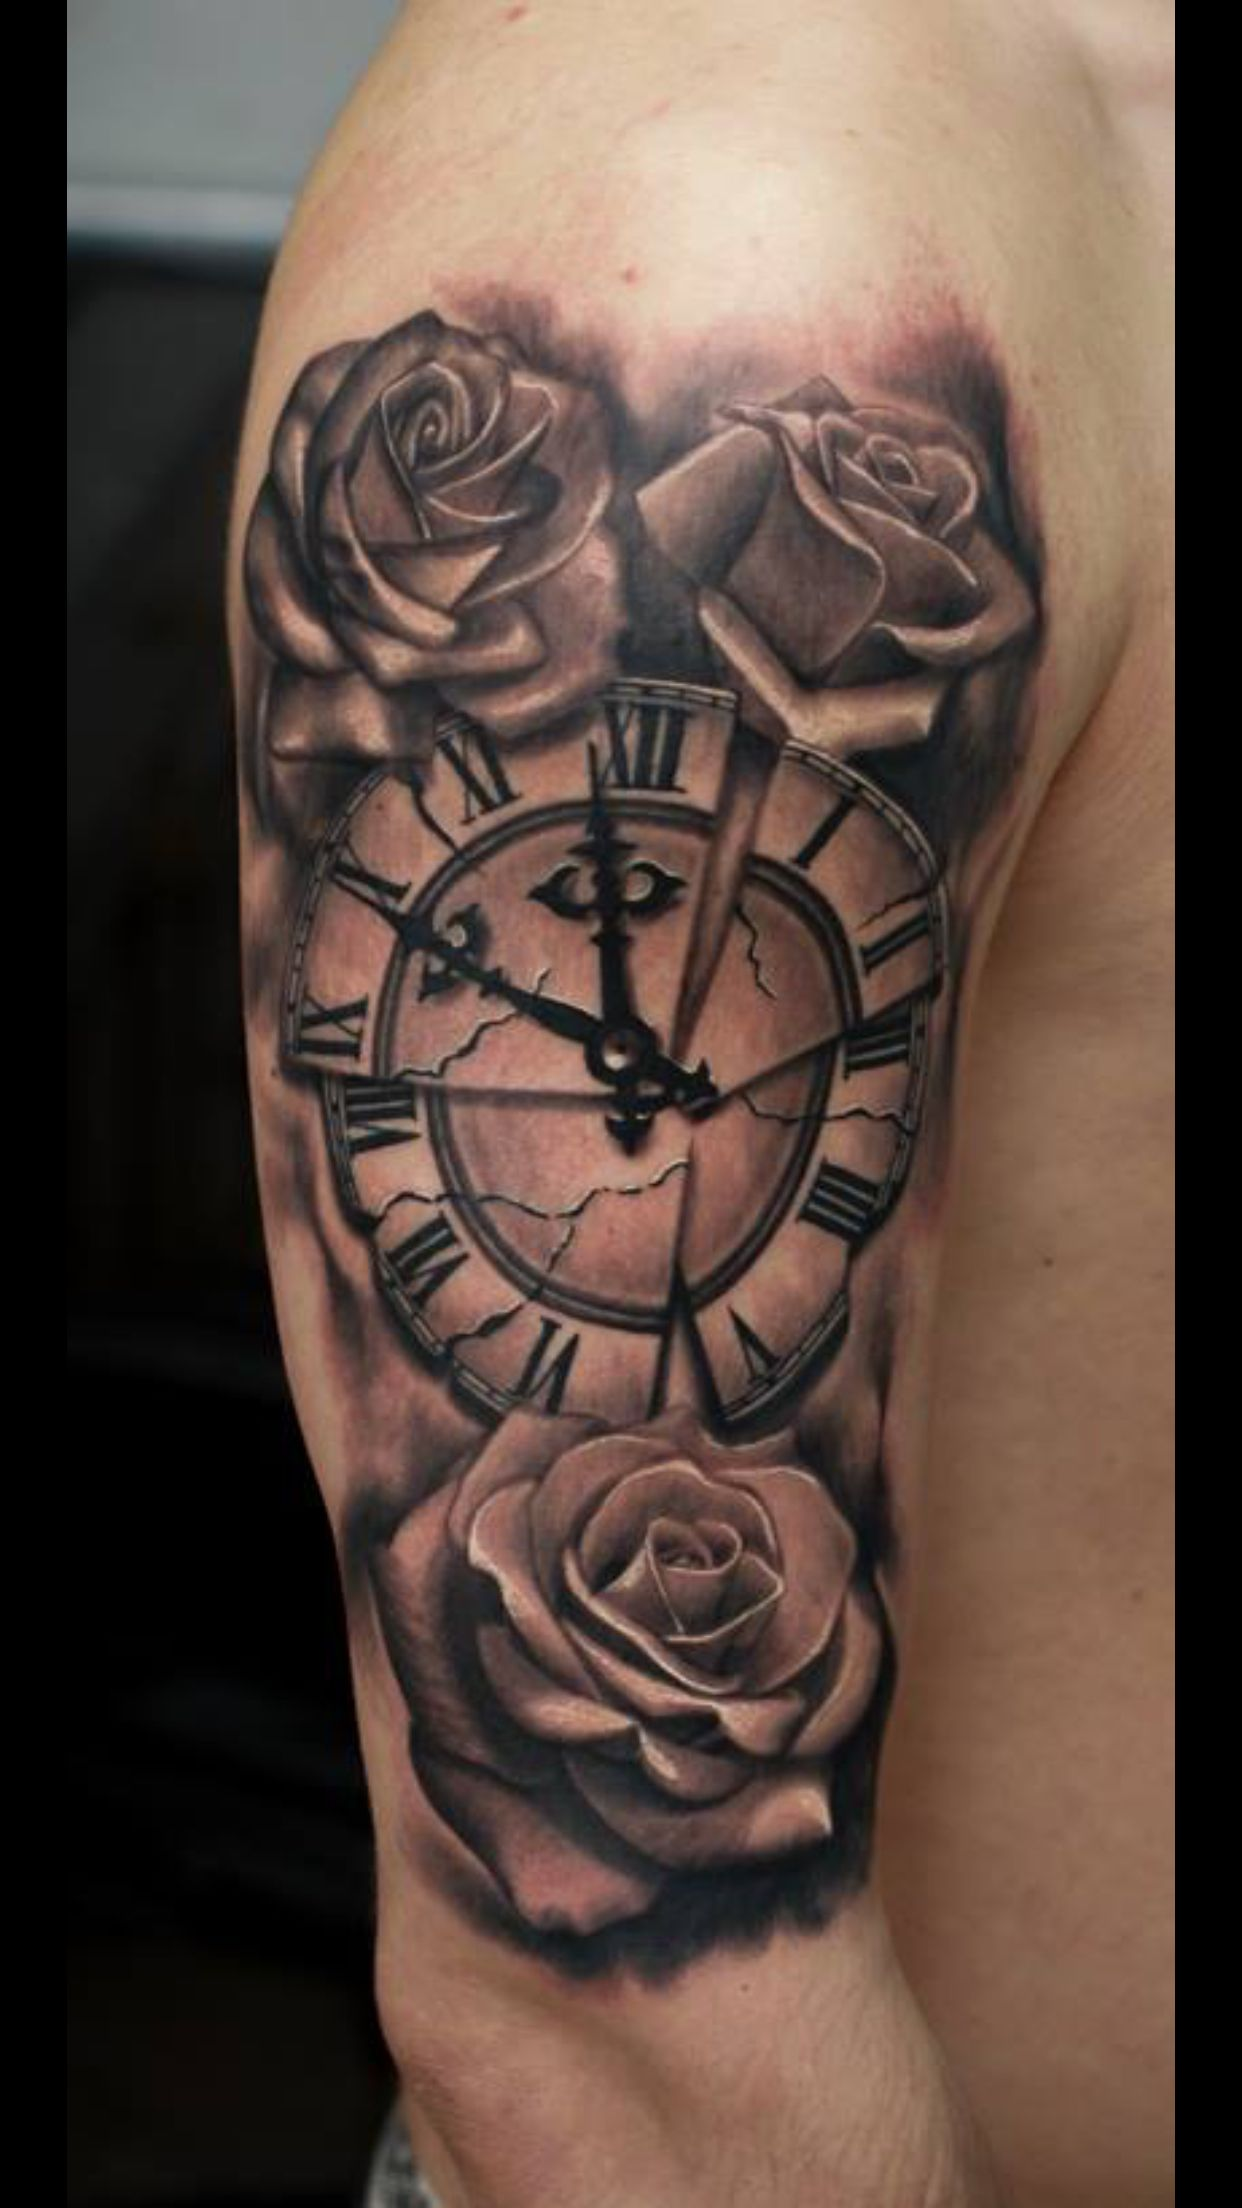 Rose Tattoofor Arm To Chest: Arm Tattoos For Guys, Sleeve Tattoos